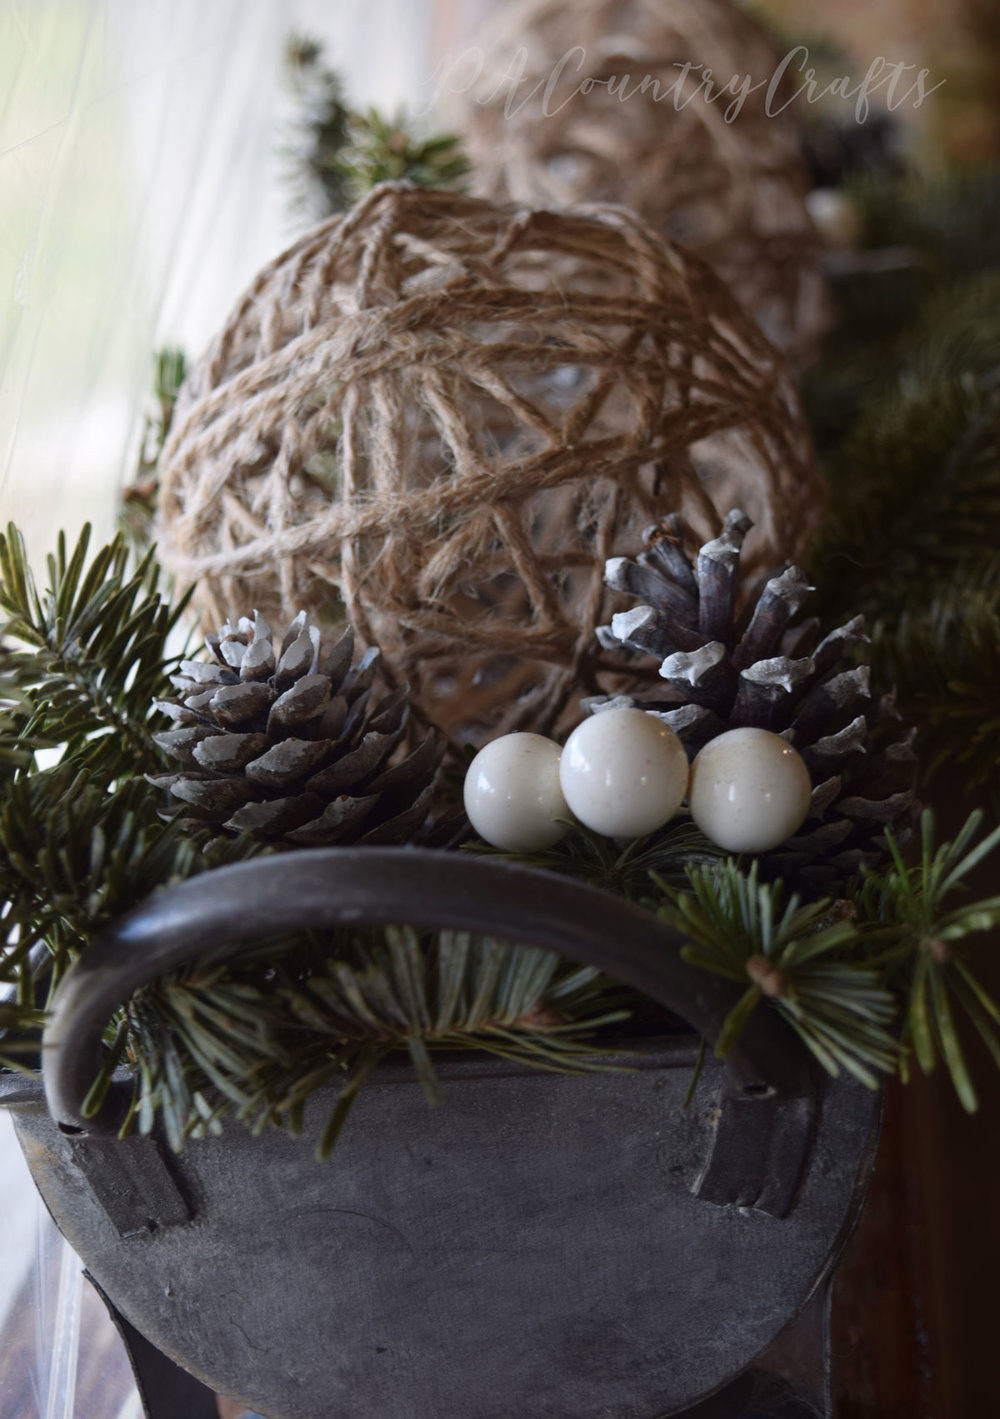 Rustic winter decor with twine balls and pine cones